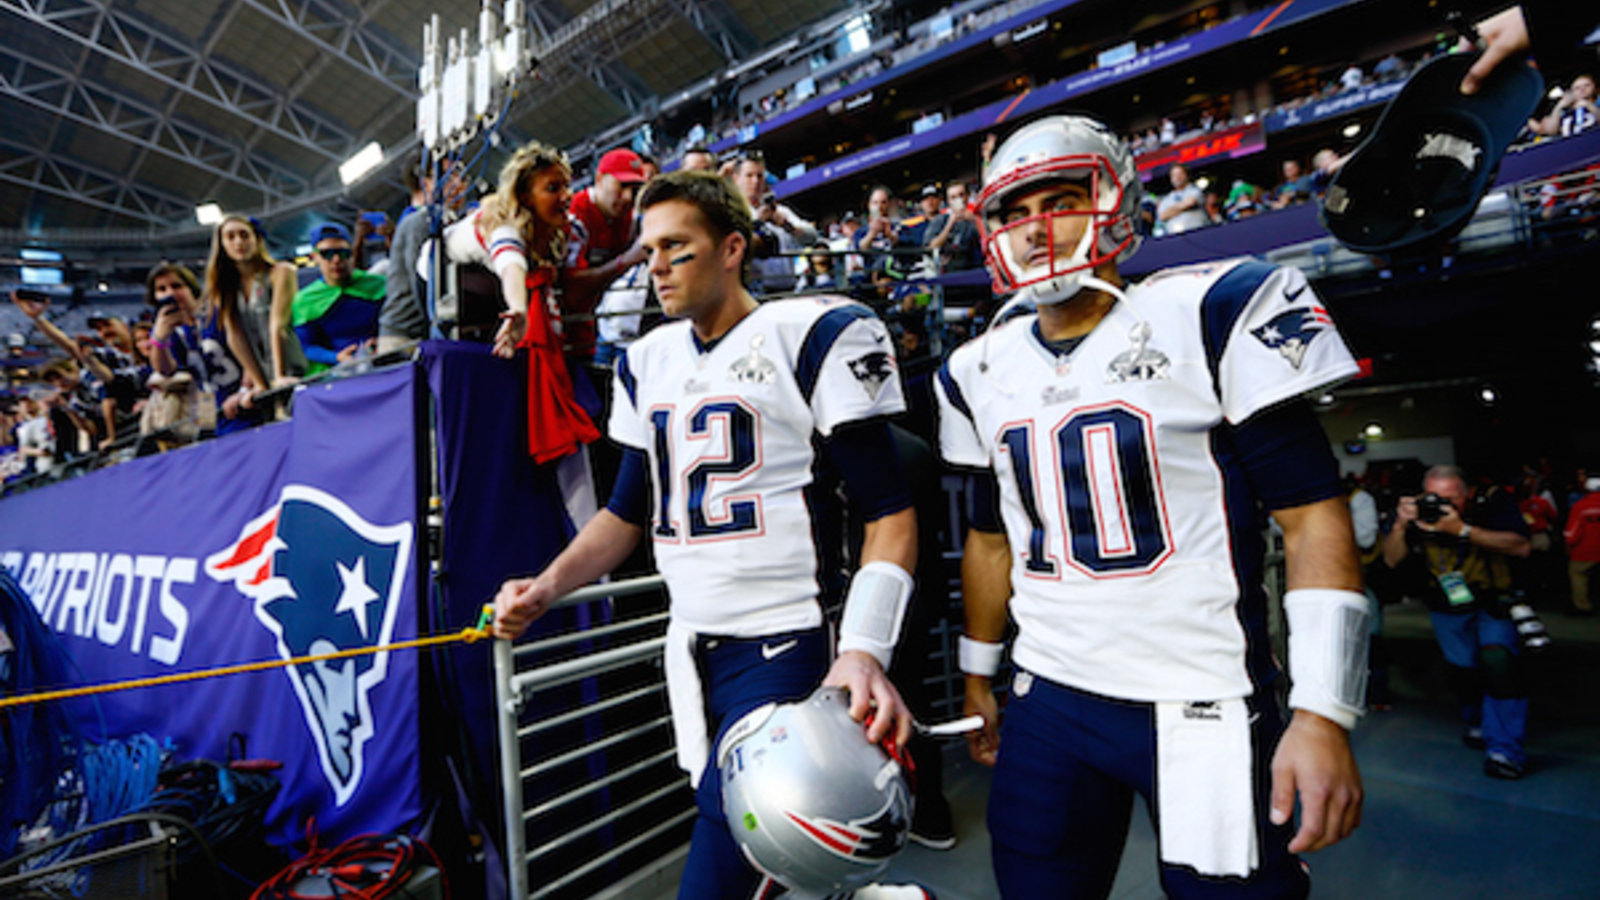 New England Patriots preview (No. 2): With Brady back, focus shifts to defense